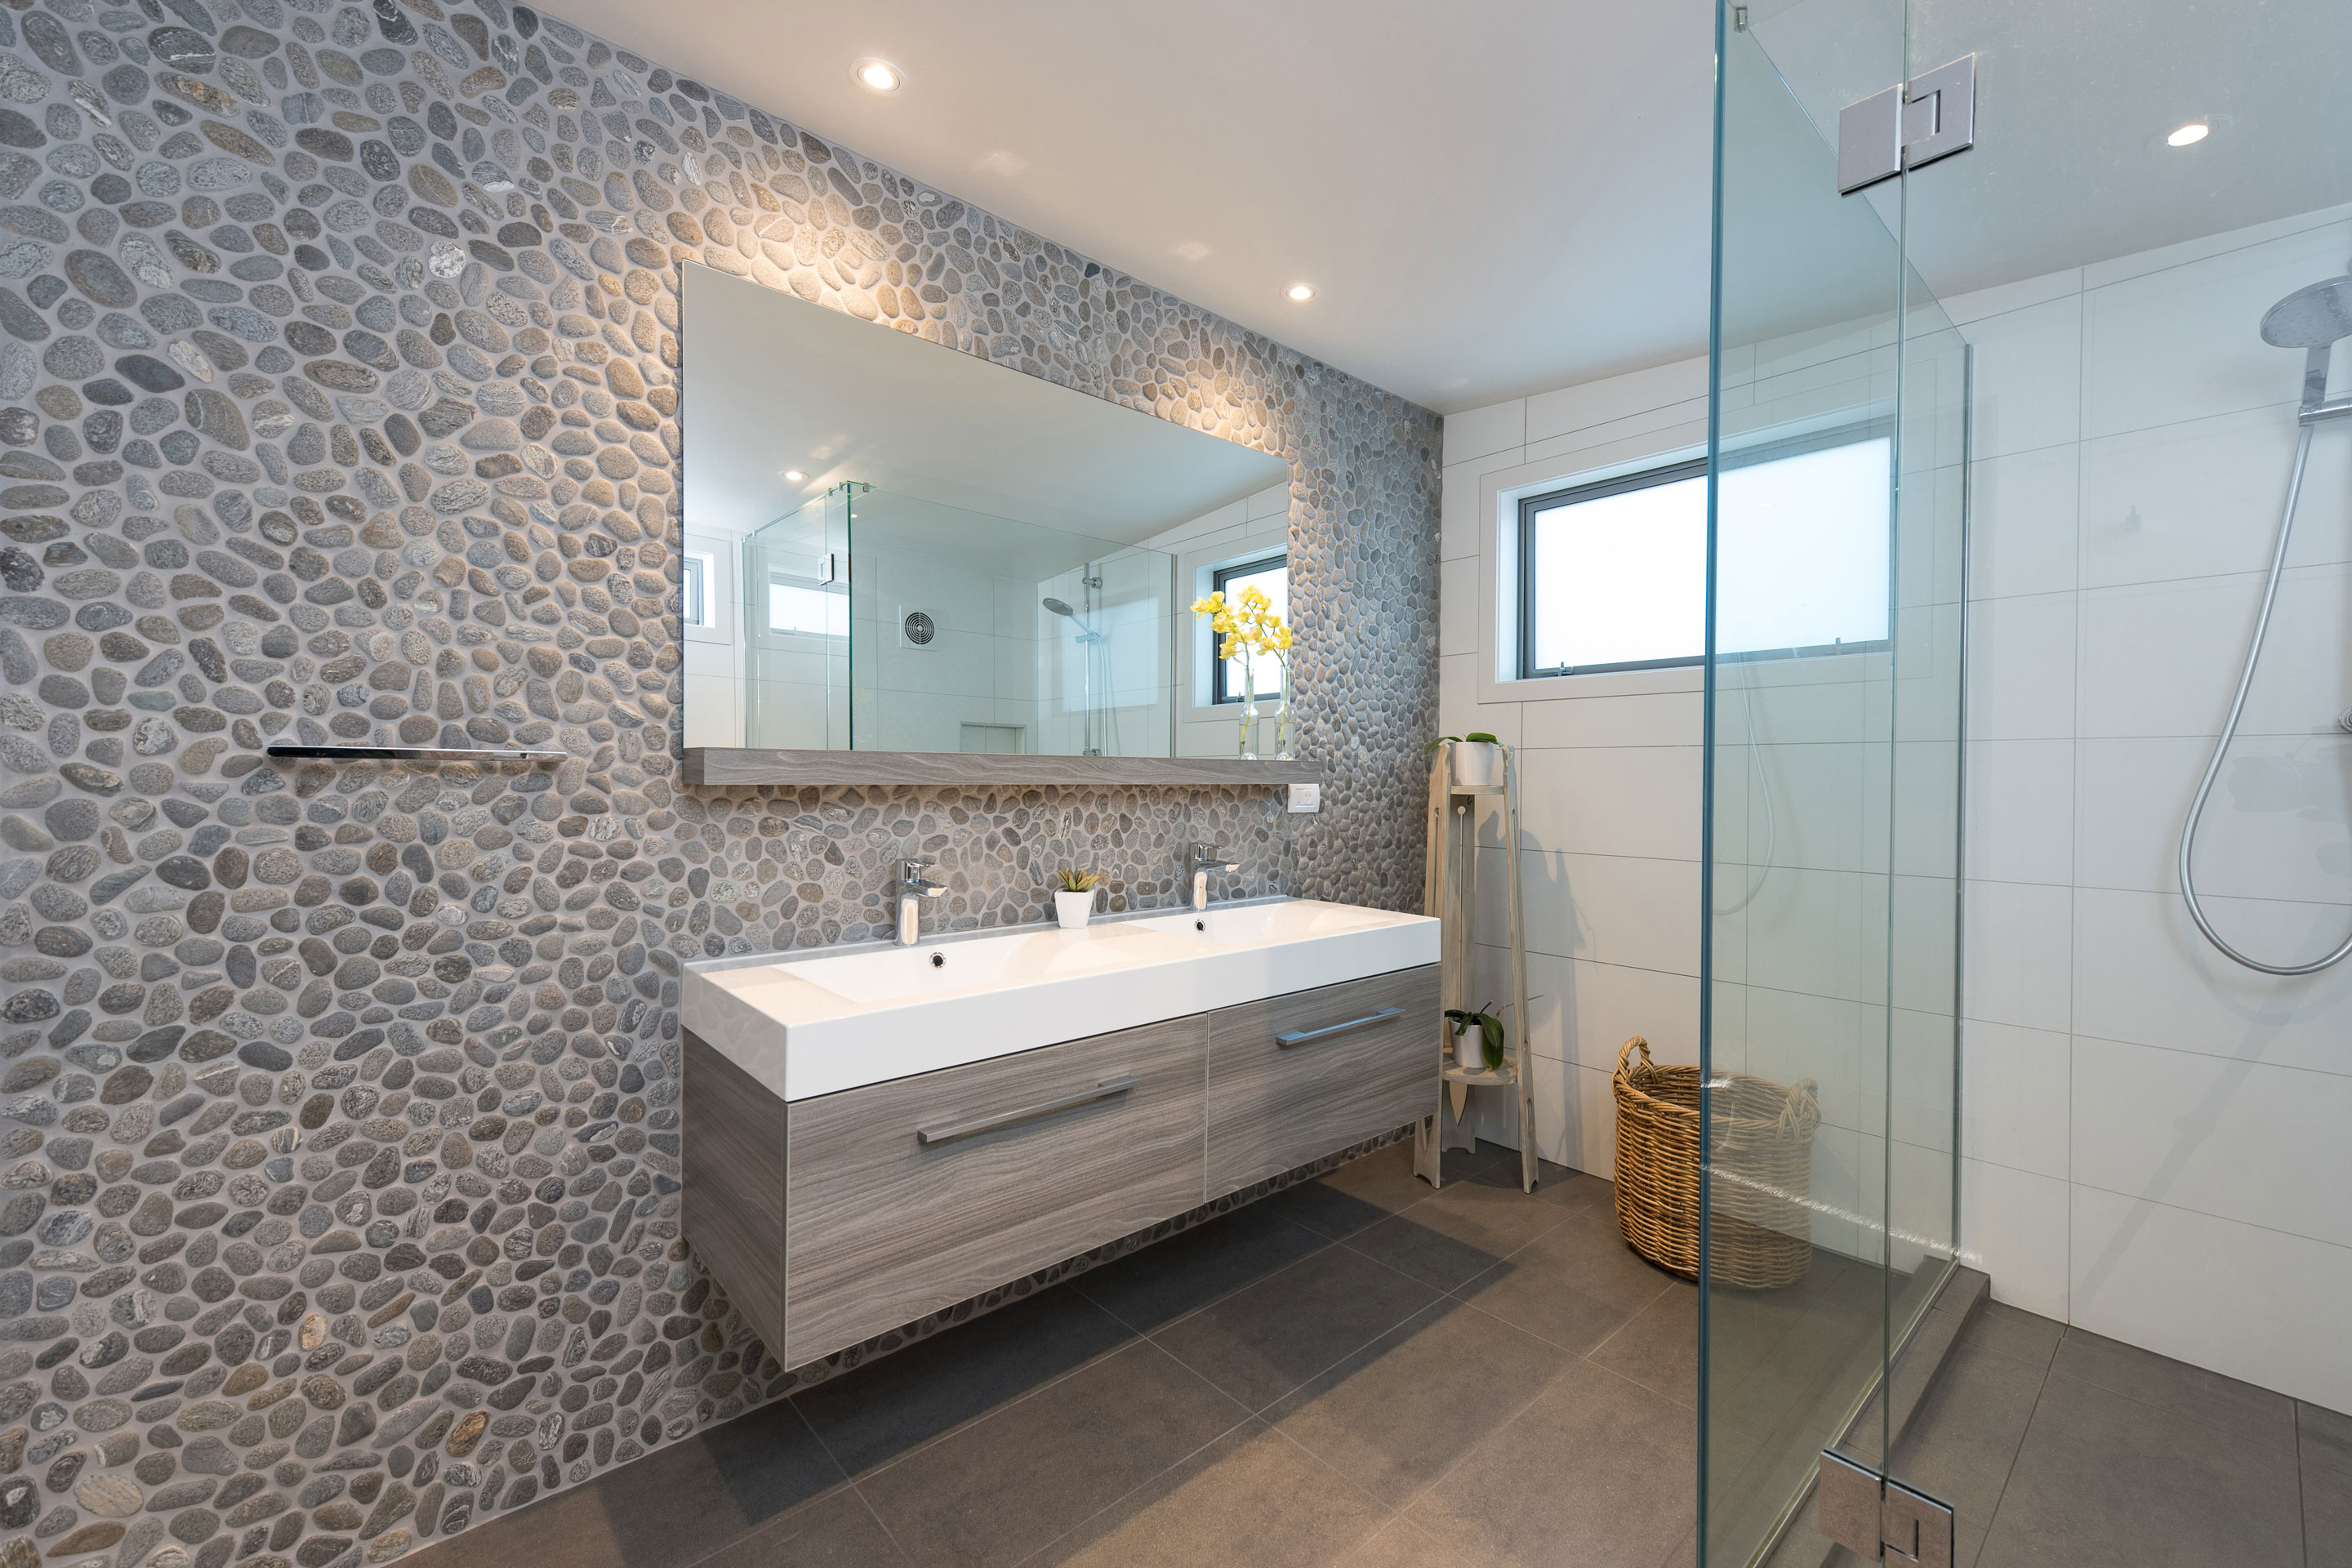 Designing With Pebble Tiles - Maintenance - Talie Jane Interiors